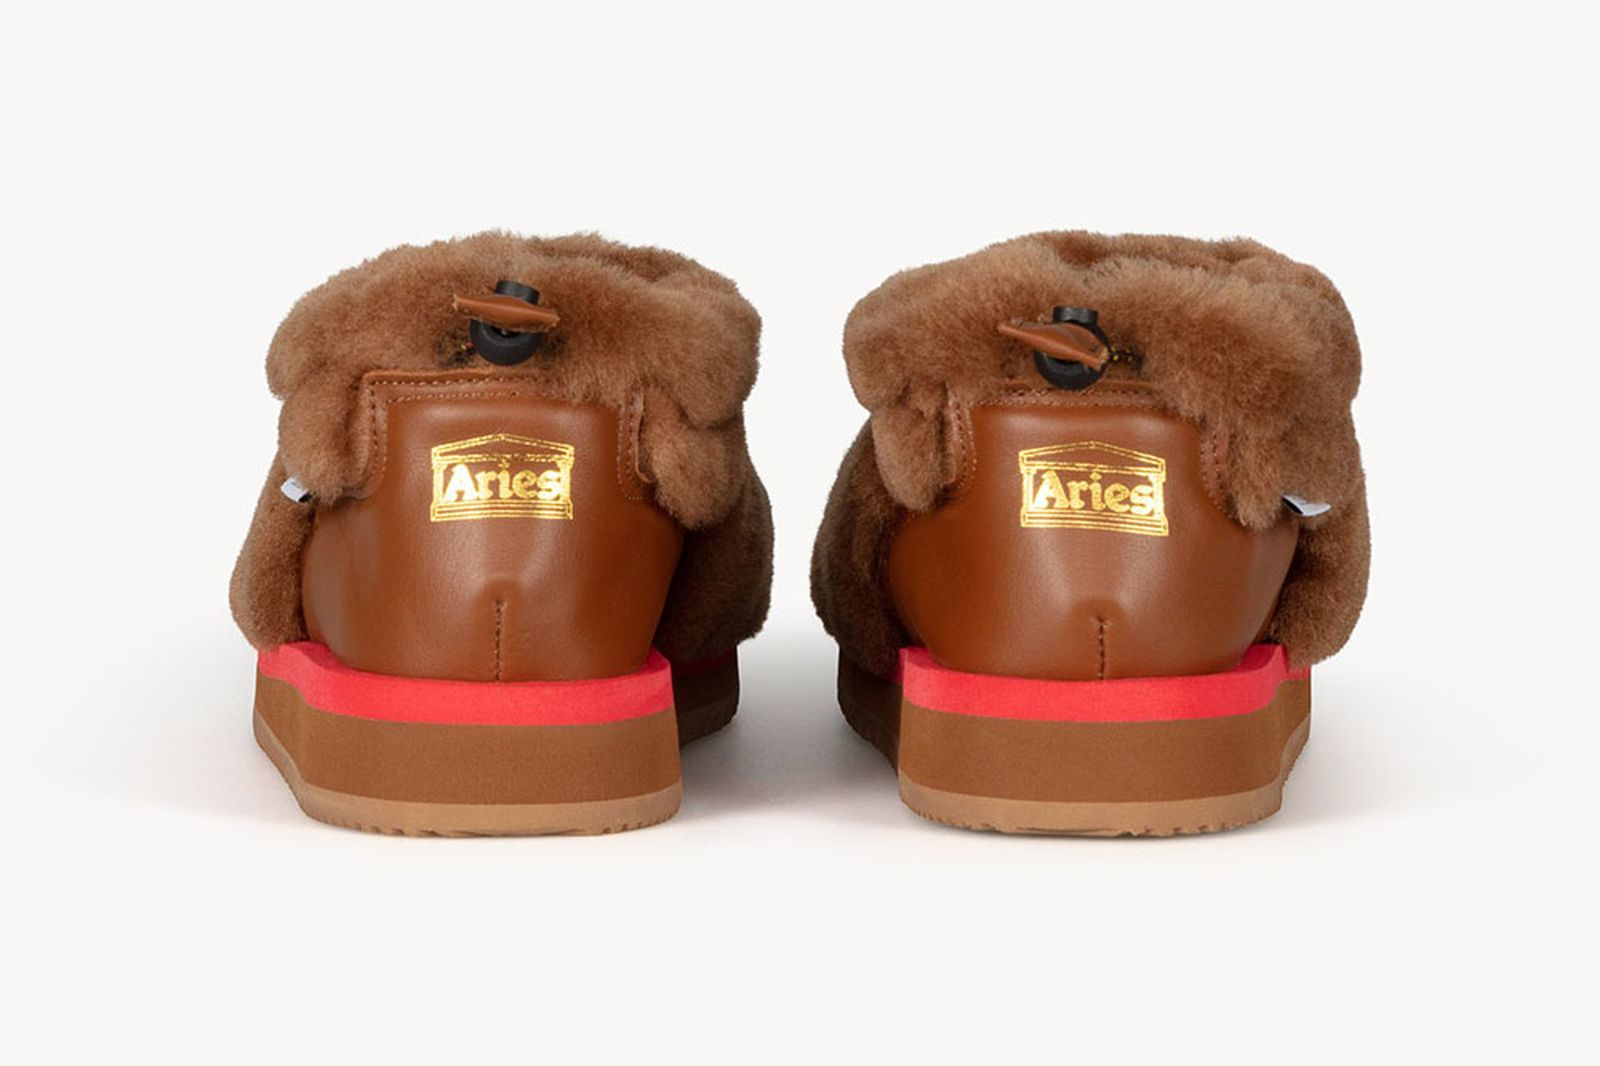 aries-suicoke-ron-release-date-price-02